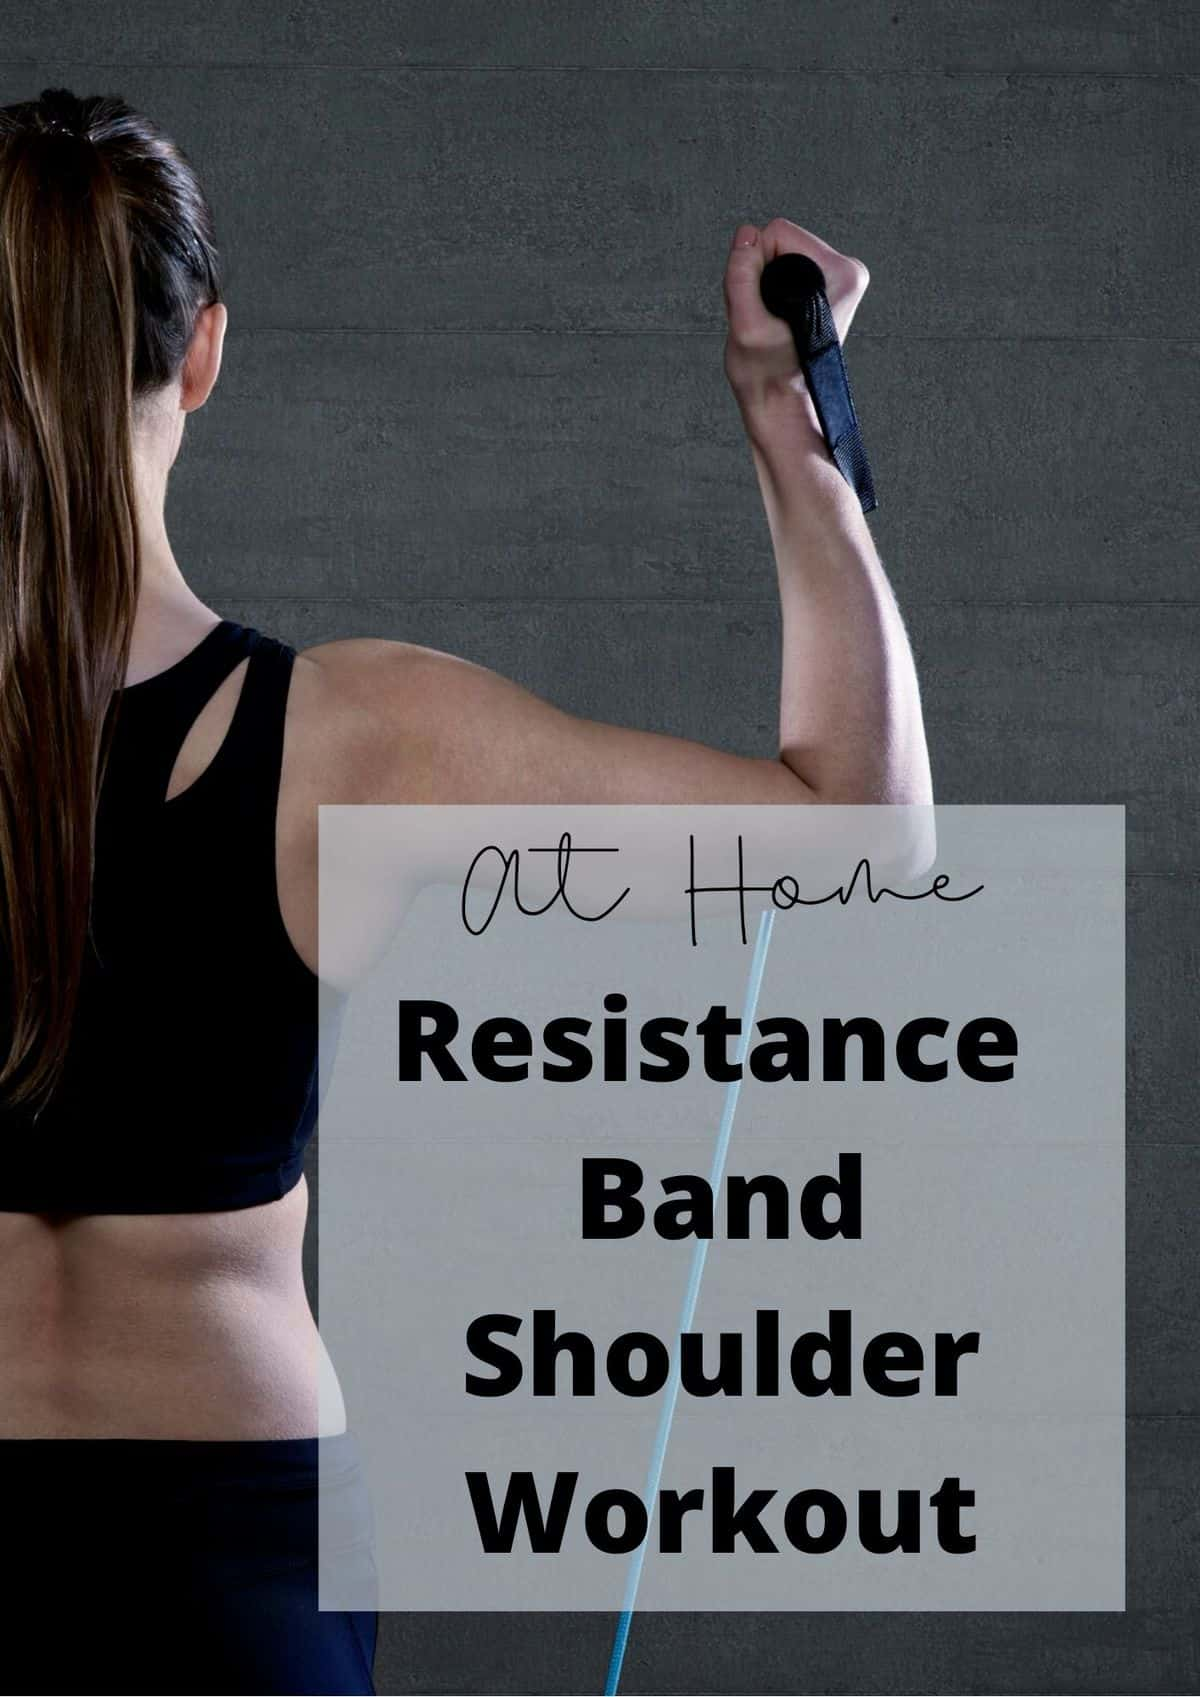 a woman holding a resistance band and working out her shoulder